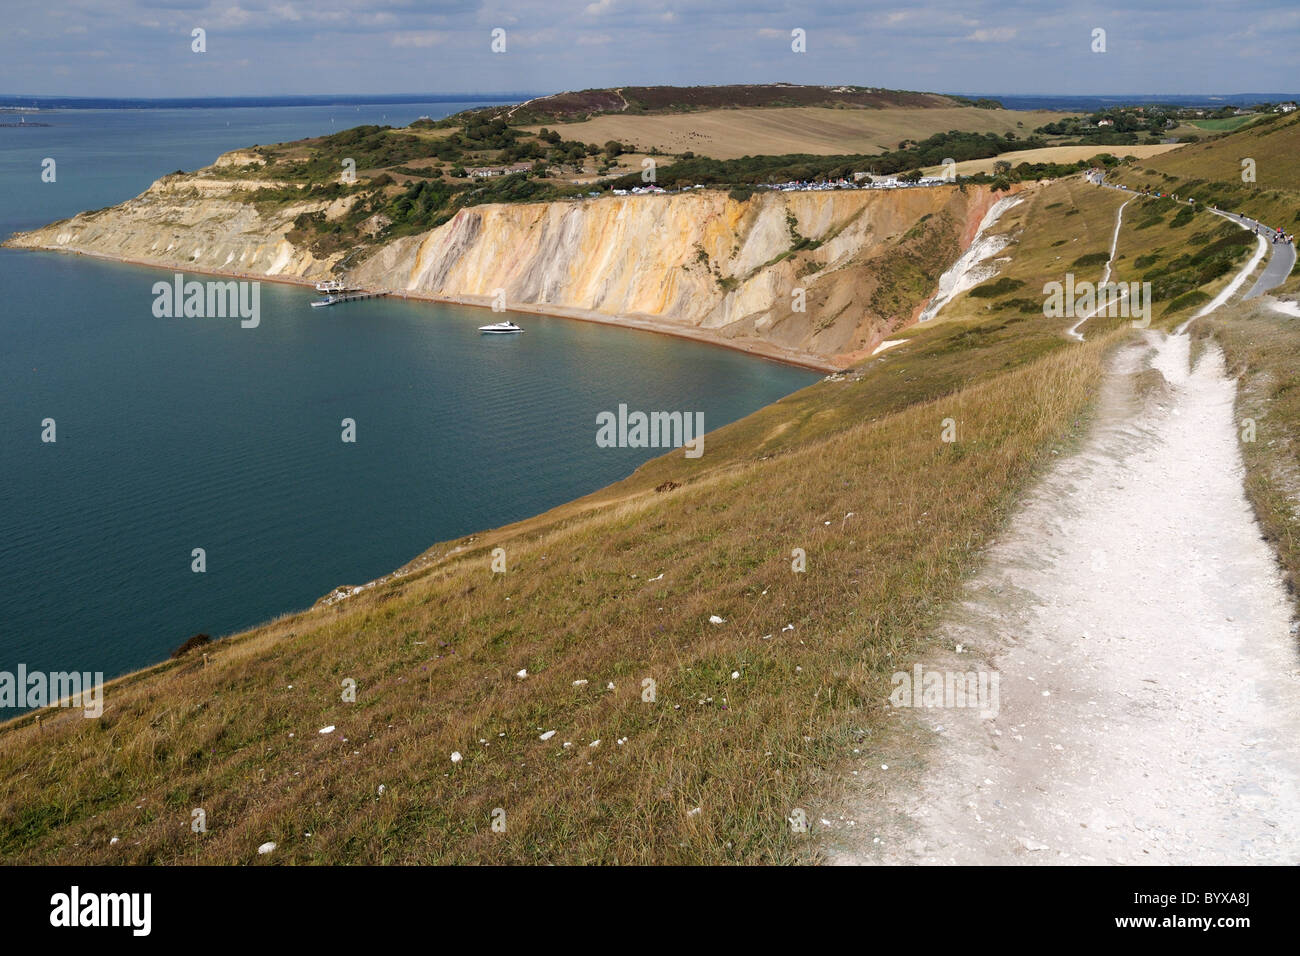 Looking along the coastal path that leads from the Needles Battery to Alum Bay on the Isle of Wight - Stock Image